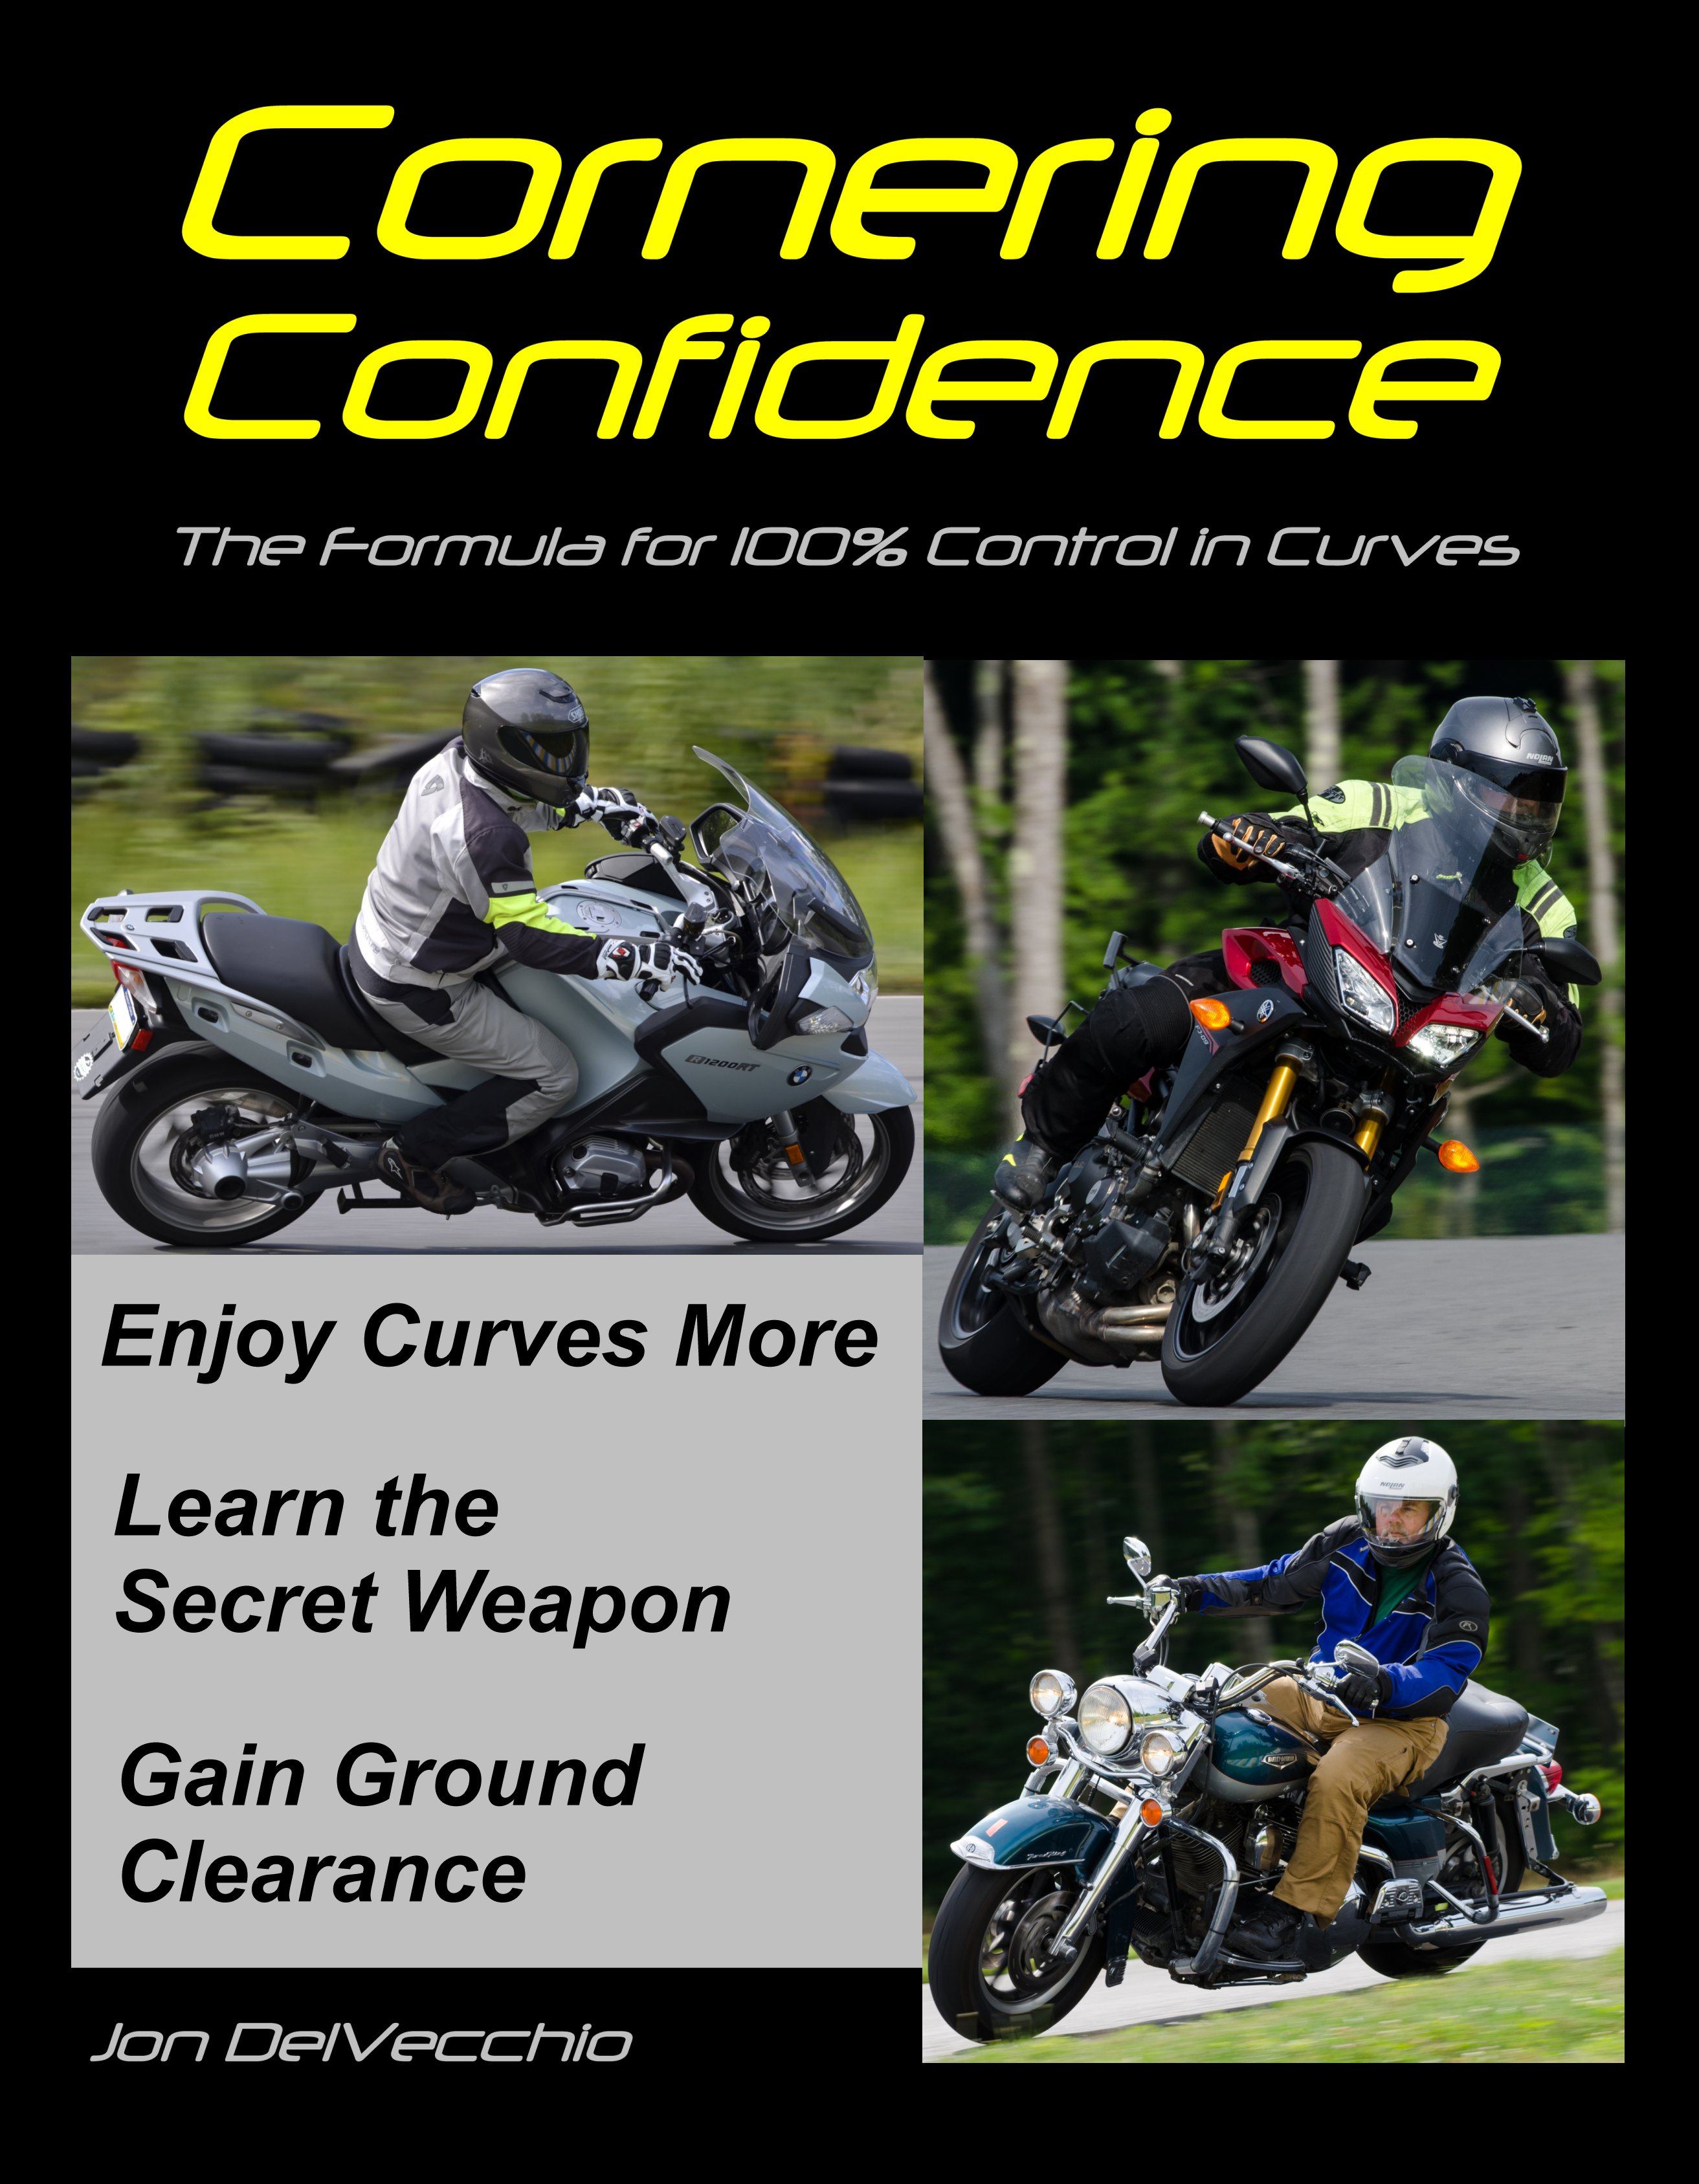 cornering-confidence-cover-1.jpg